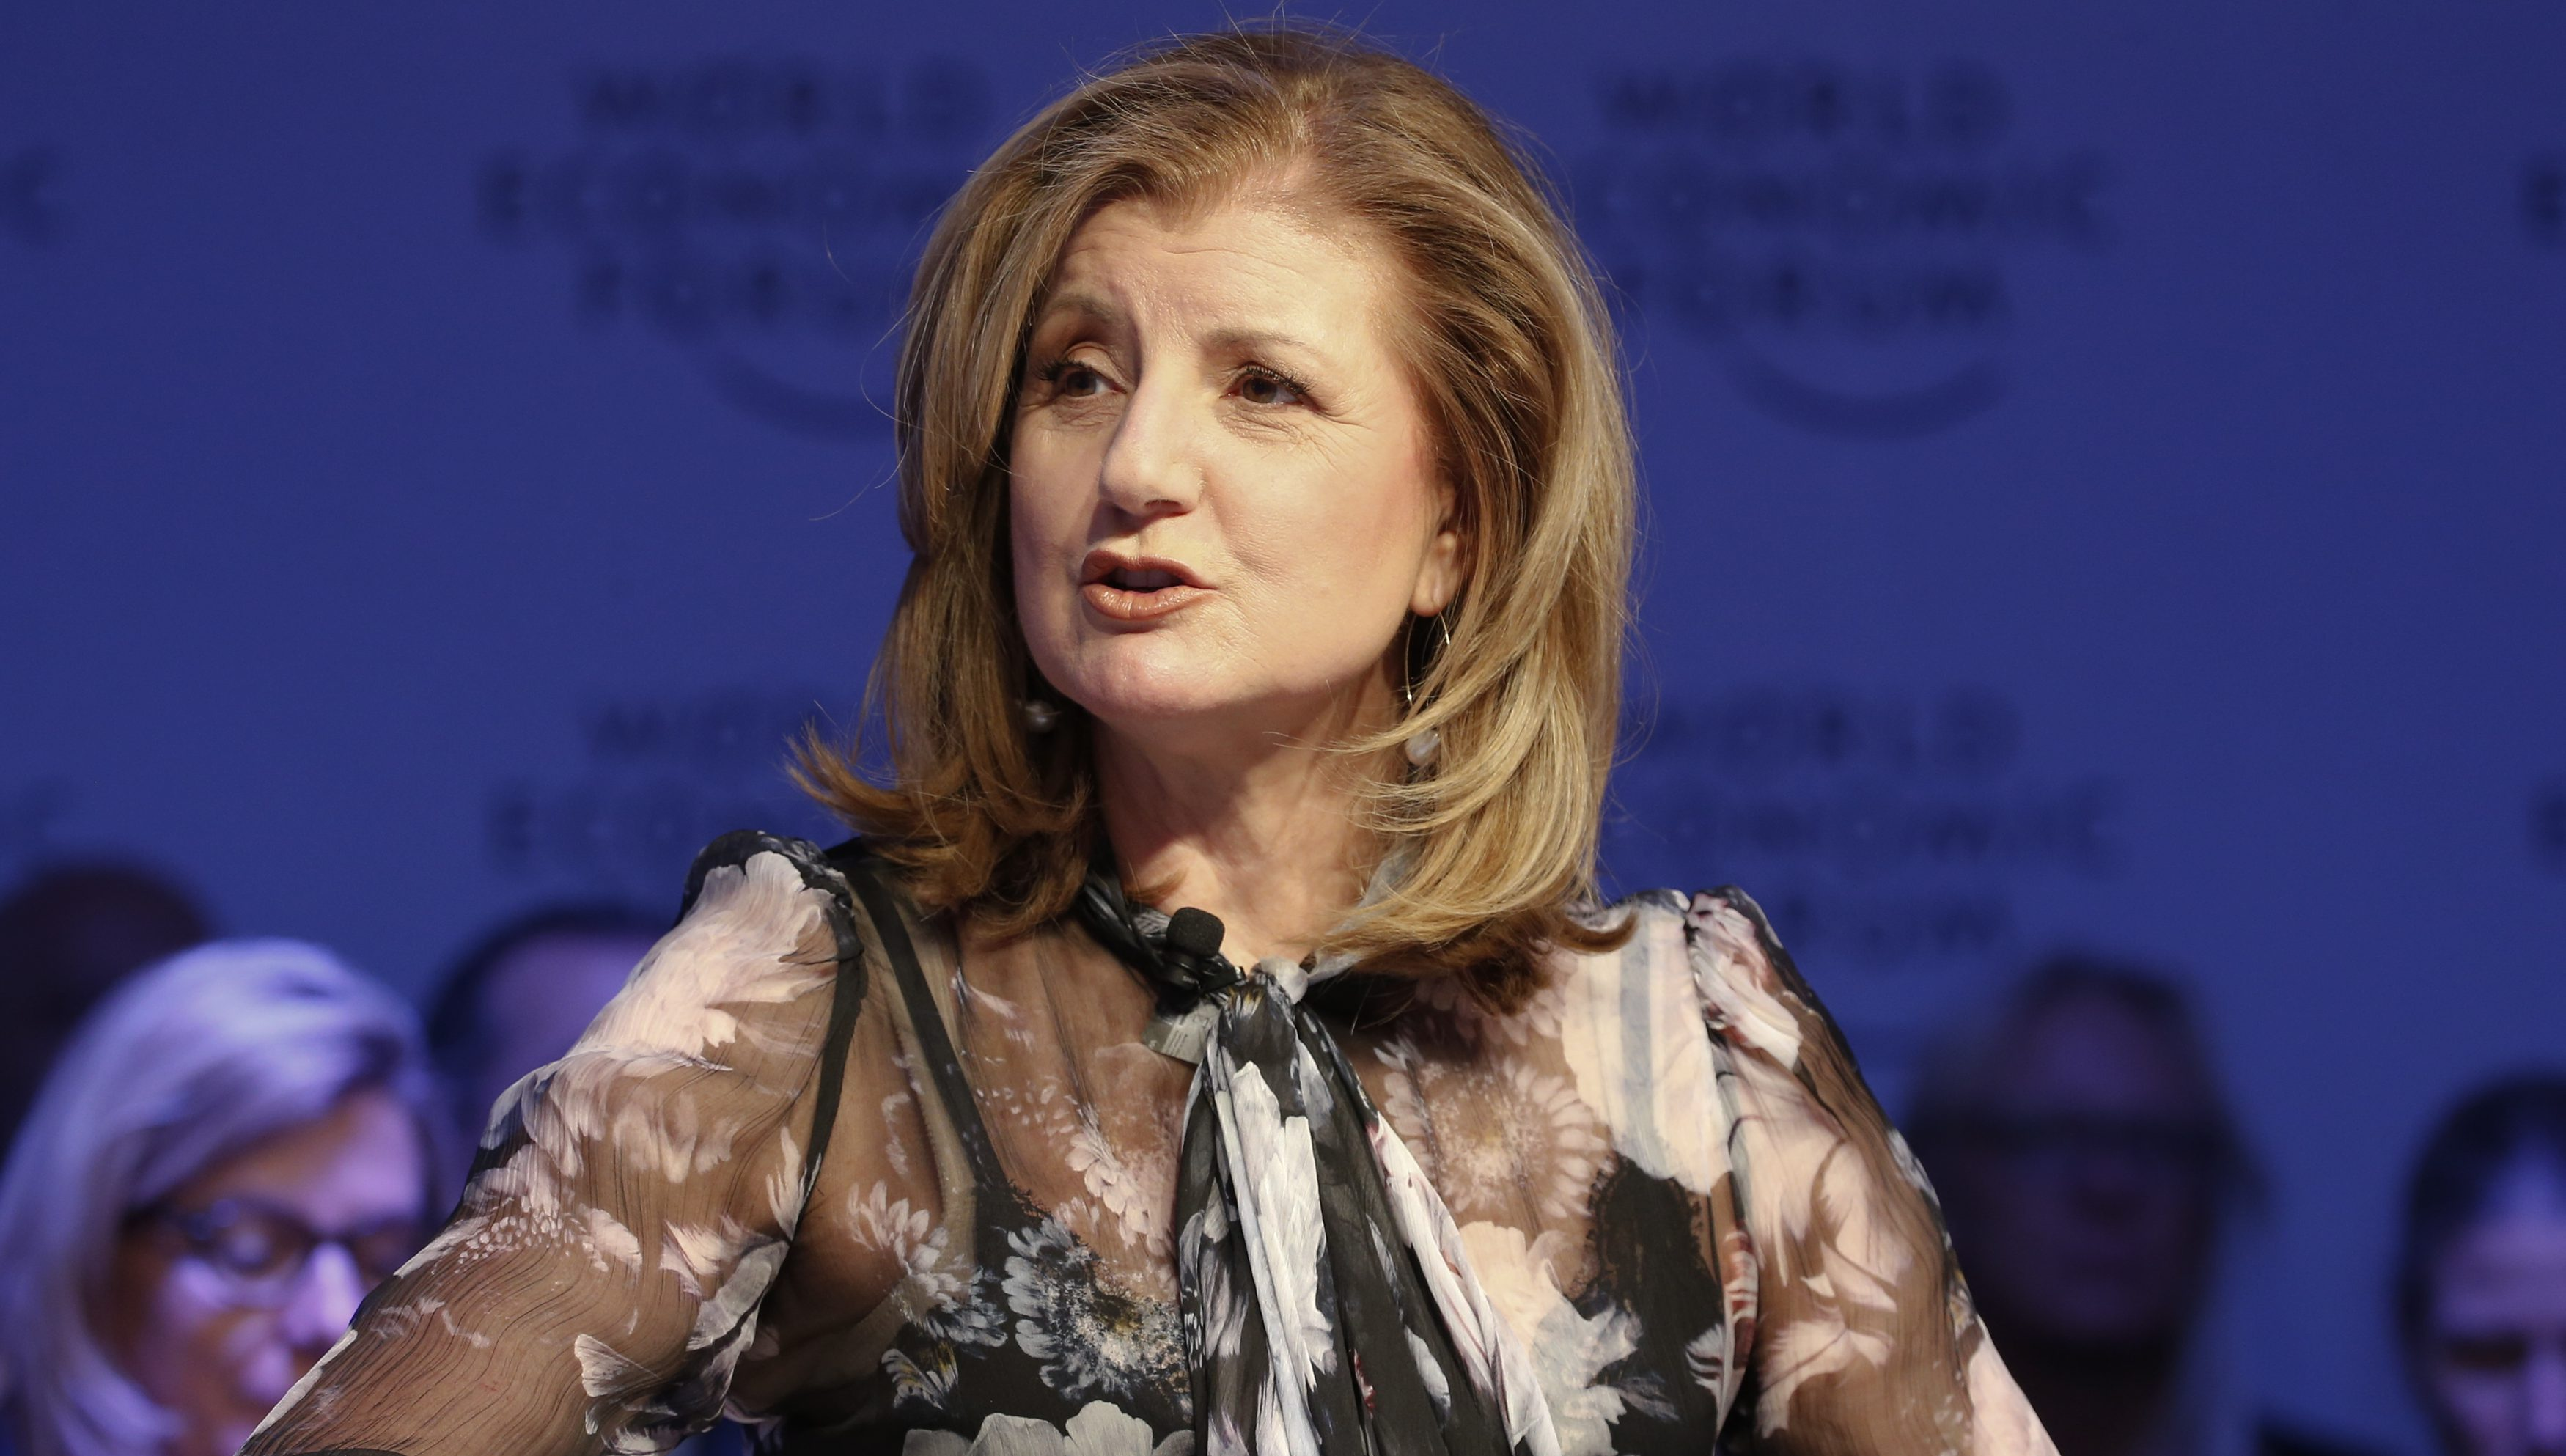 Arianna Huffington, Founder, Thrive Global, attends the annual meeting of the World Economic Forum (WEF) in Davos, Switzerland, January 18, 2017.